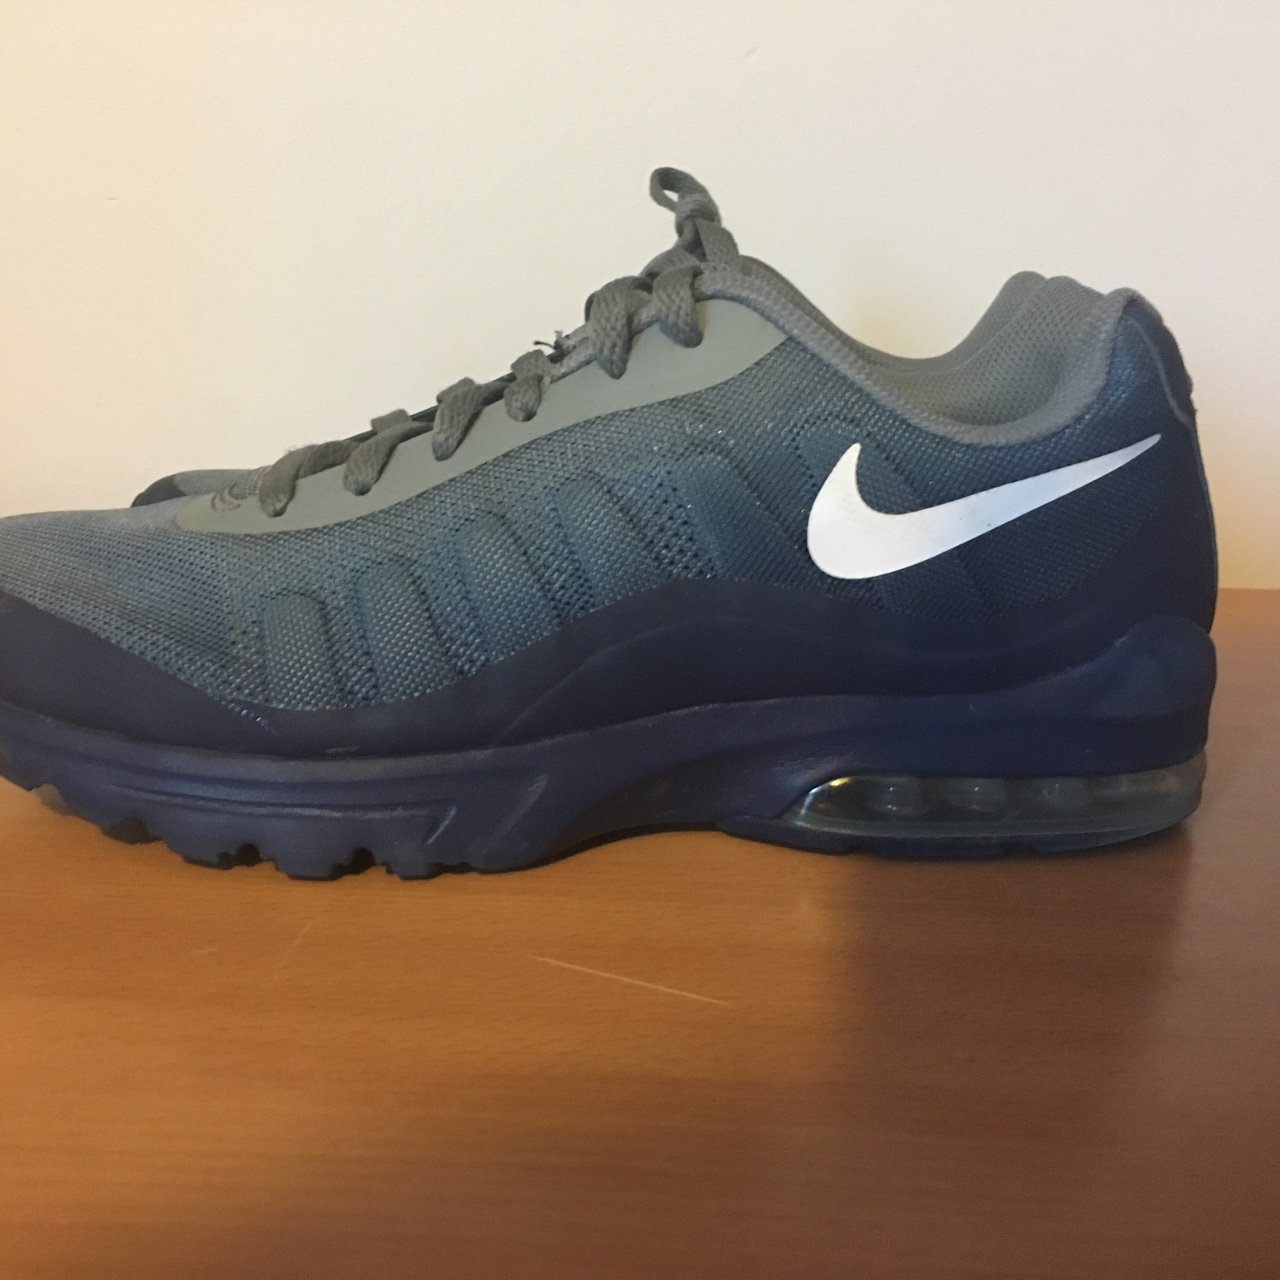 49b0d7a5fe Nike invigor air max blue/grey worn twice great condition - Depop